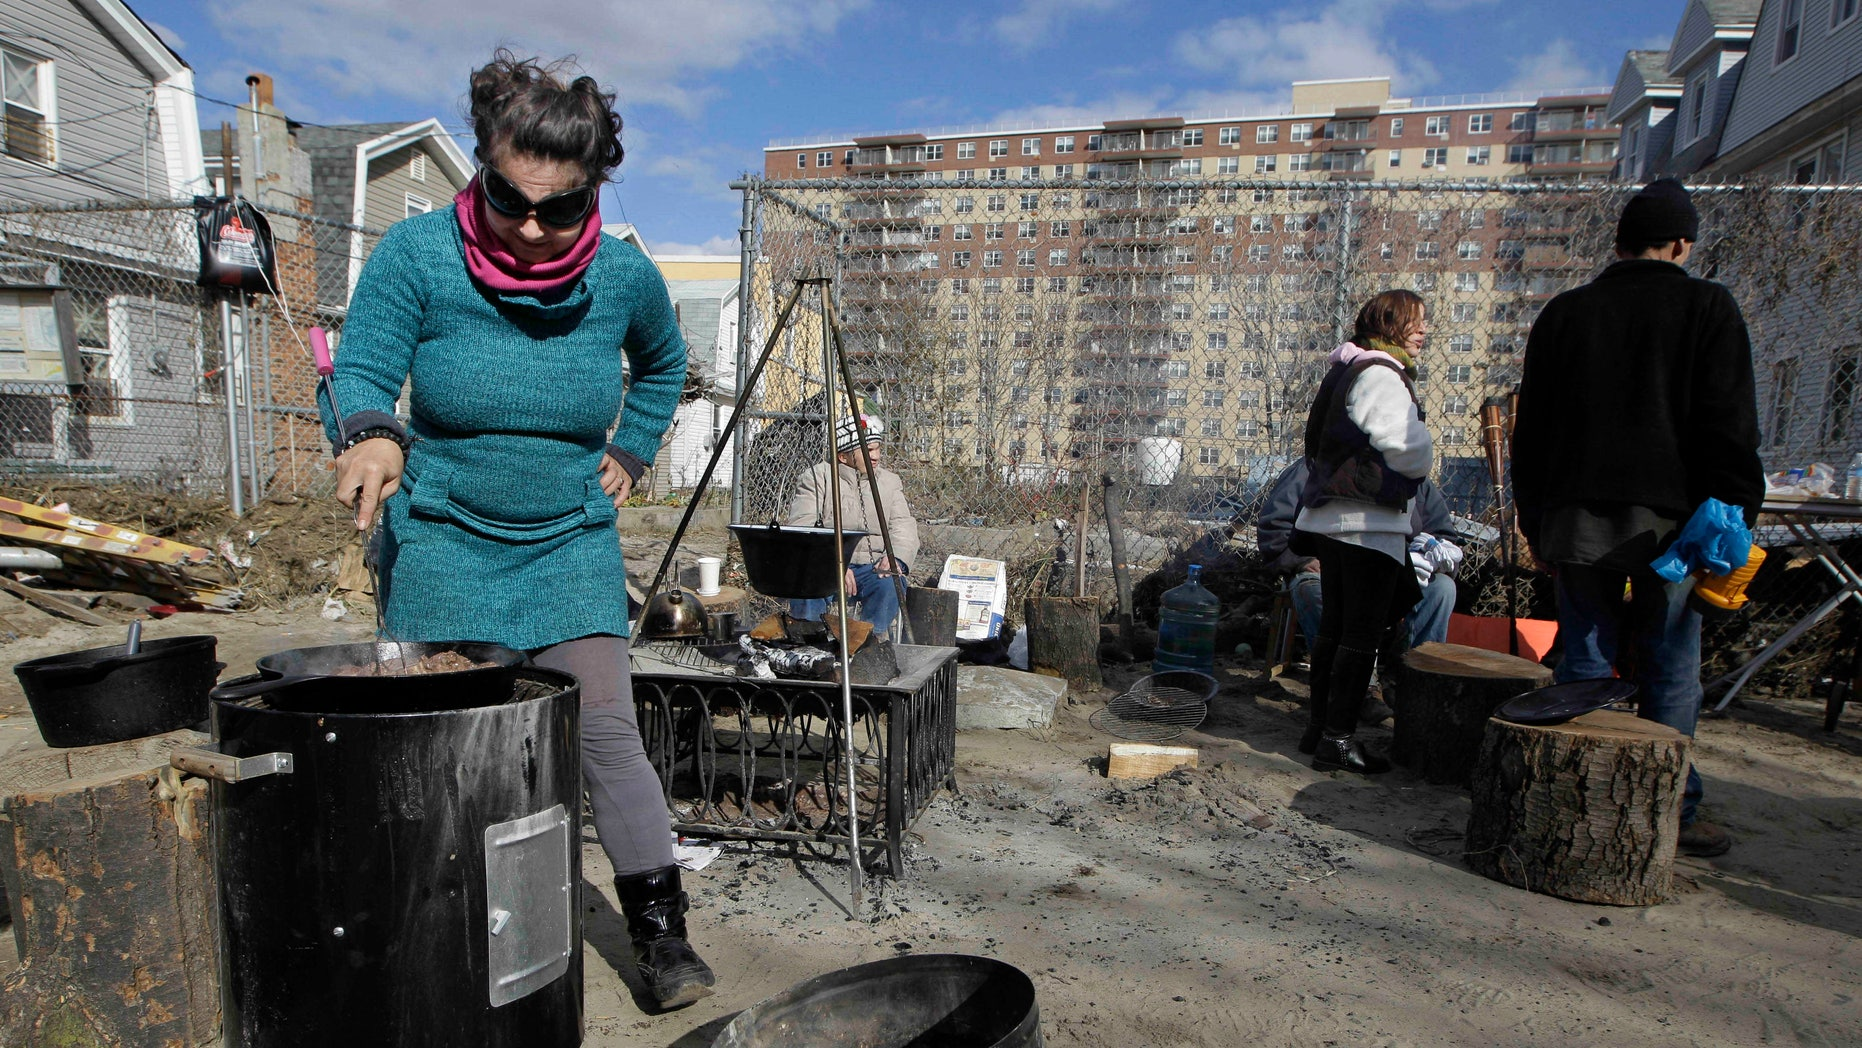 Nov. 3, 2012: Kiva Kahl prepares beef stew for friends and neighbors in front of her residence in the Rockaways section of New York. More New Yorkers awoke Saturday to power being restored for the first time since Superstorm Sandy pummeled the region, but patience wore thin among those in the region who have been without power for most of the week.